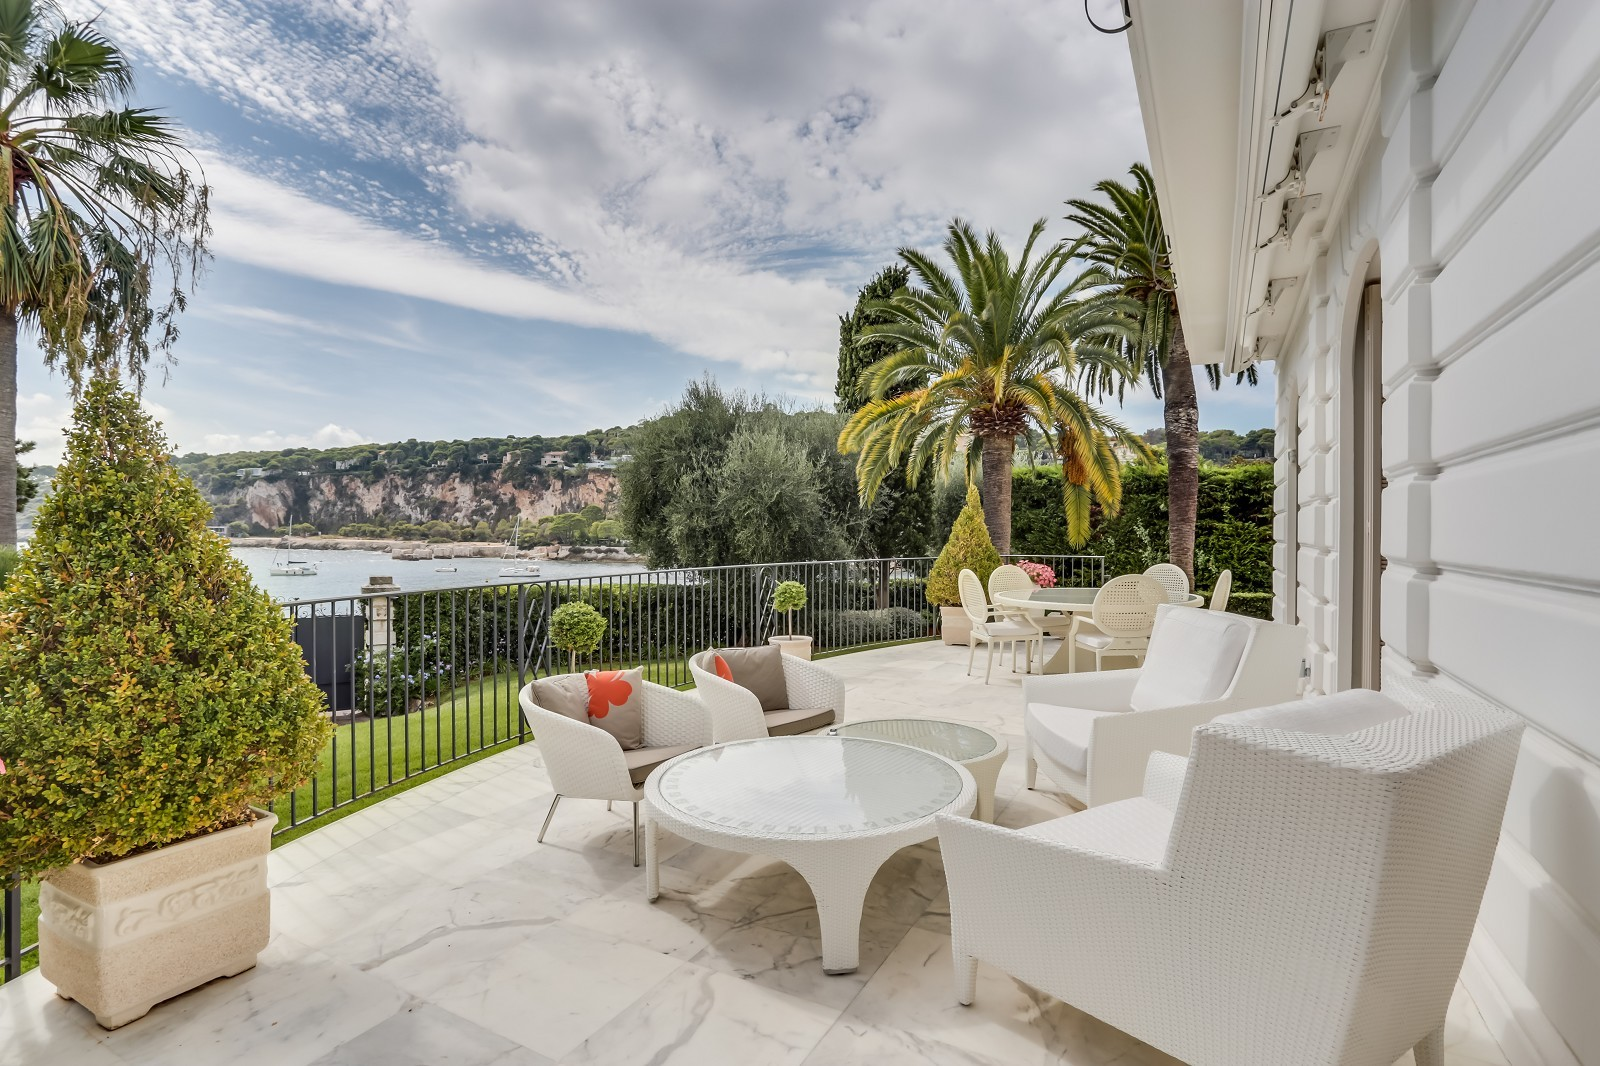 SAINT JEAN CAP FERRAT - Exclusive waterfront property with private access to the beach and amazing see view